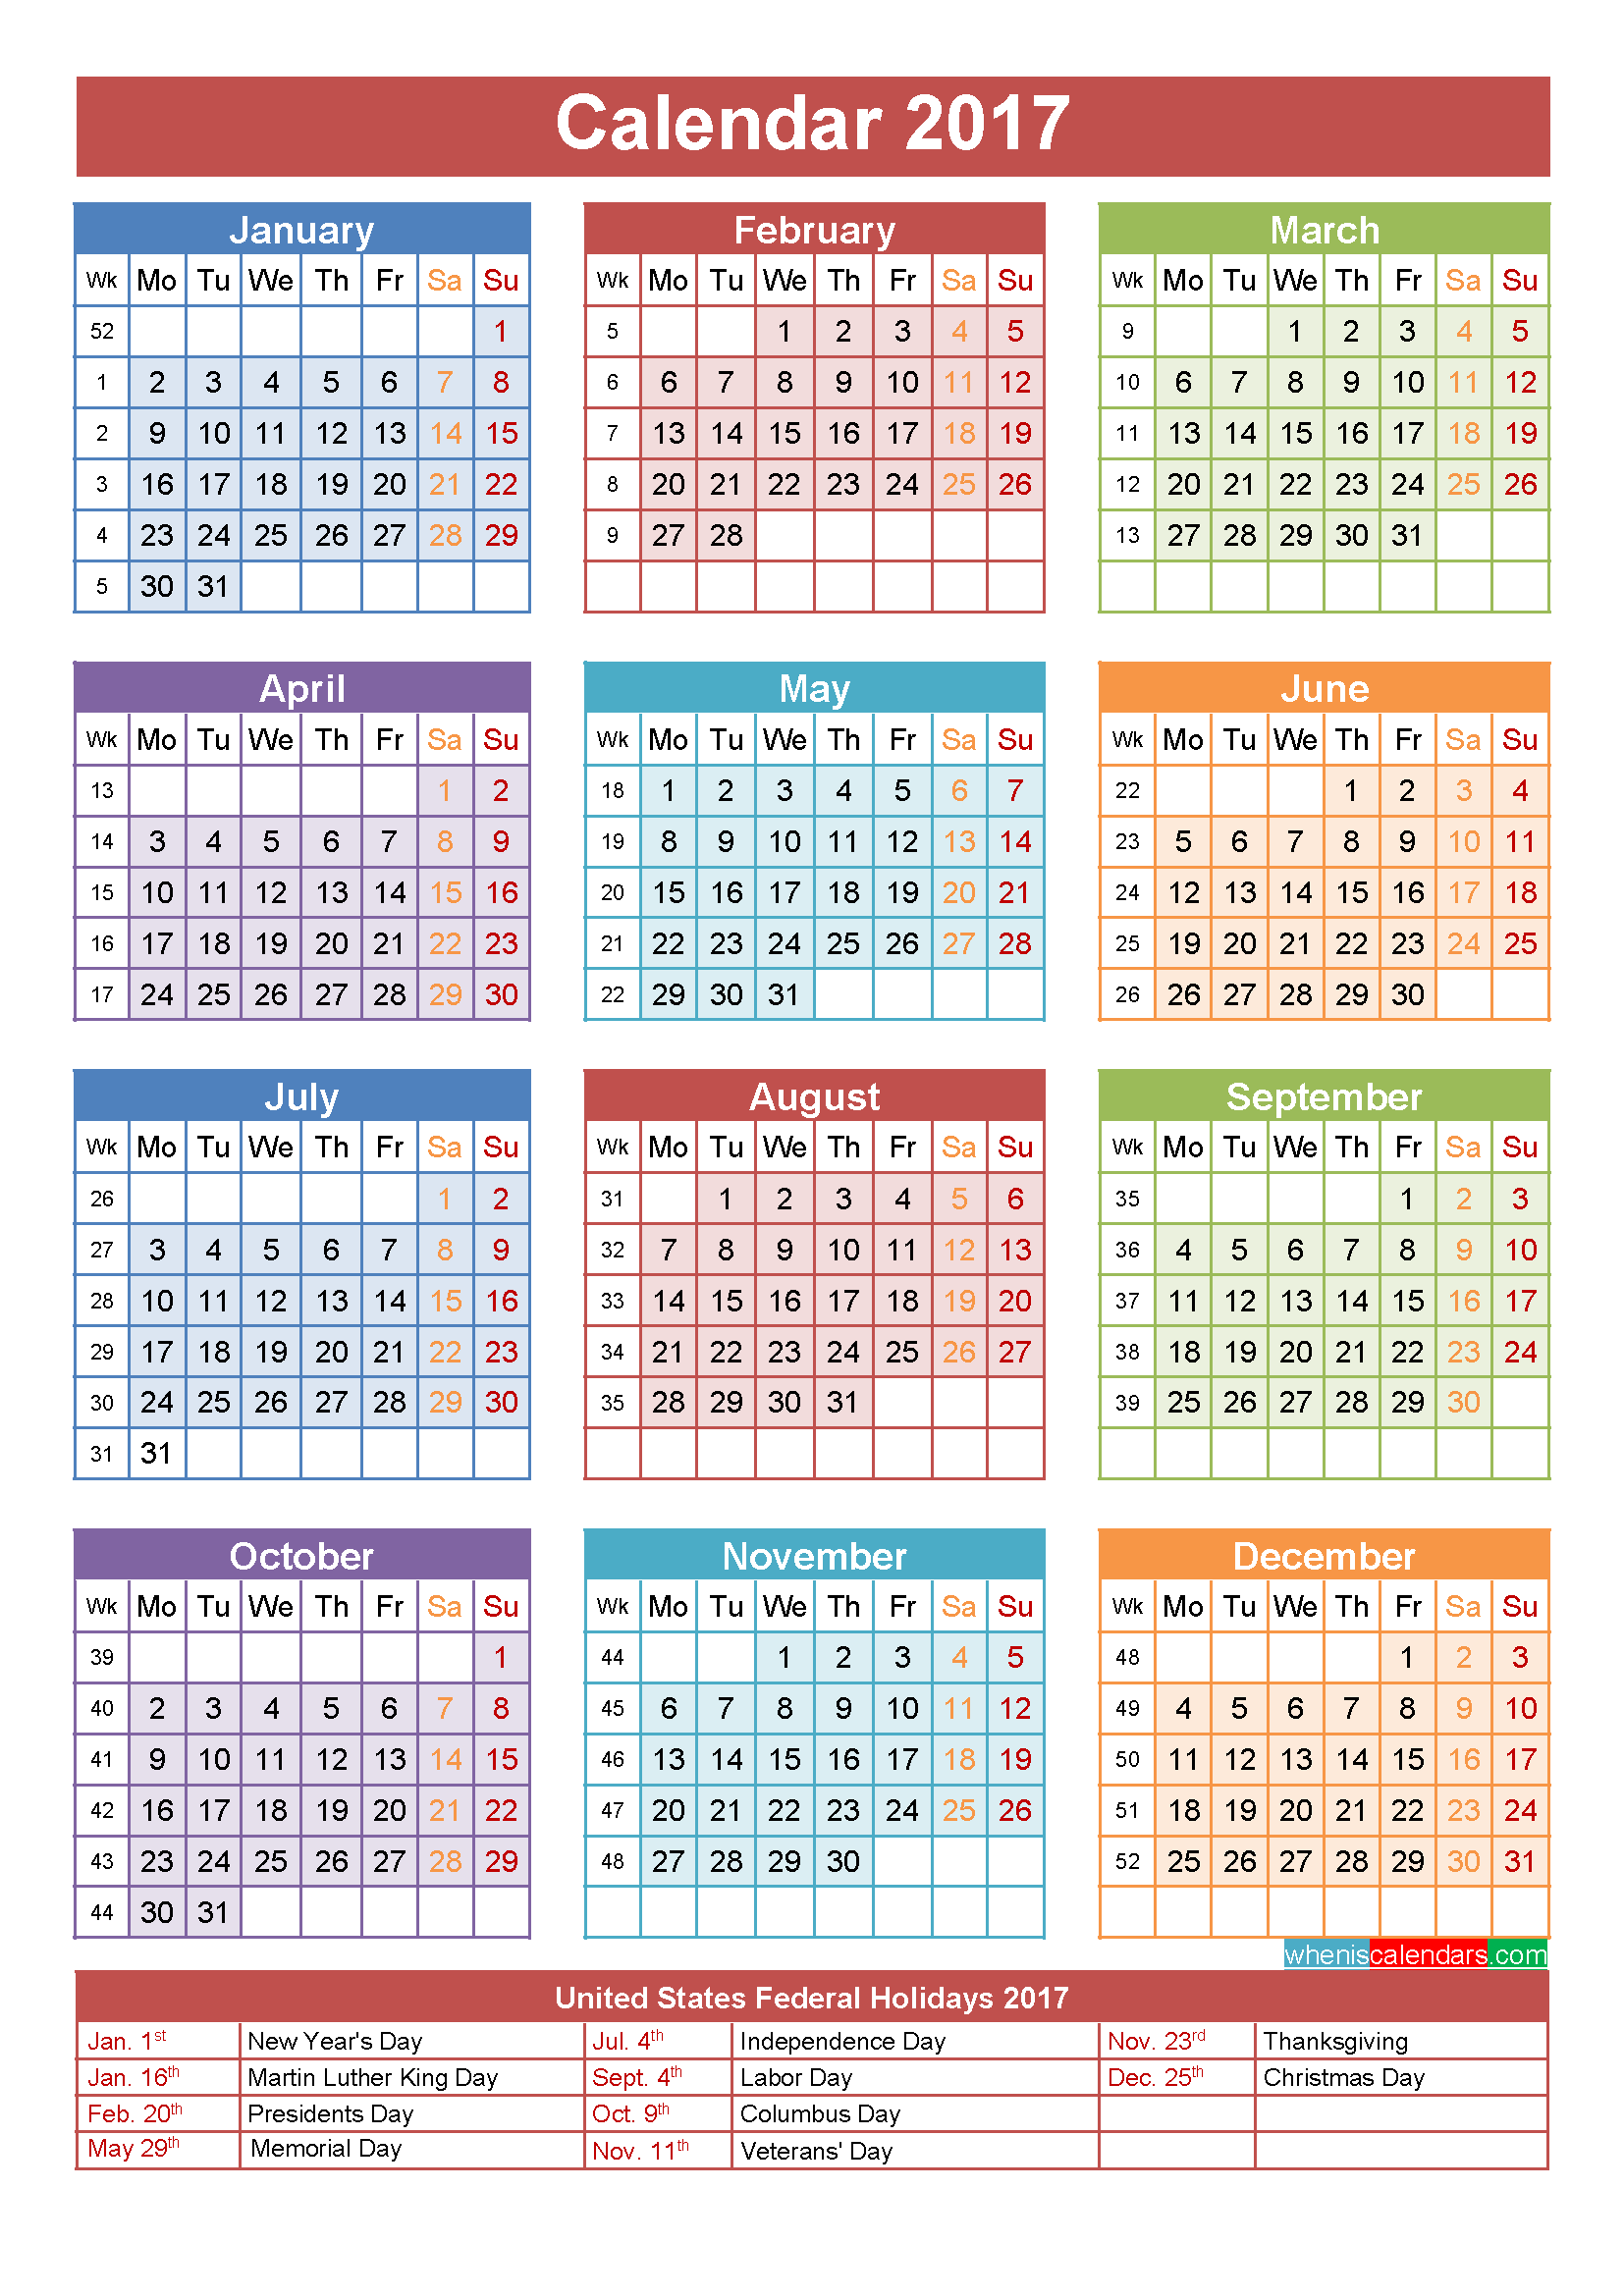 2017 Calendar With Indian Holidays Pdf Holidays And Observances In India In 2017 Timeanddate 2017 Calendar